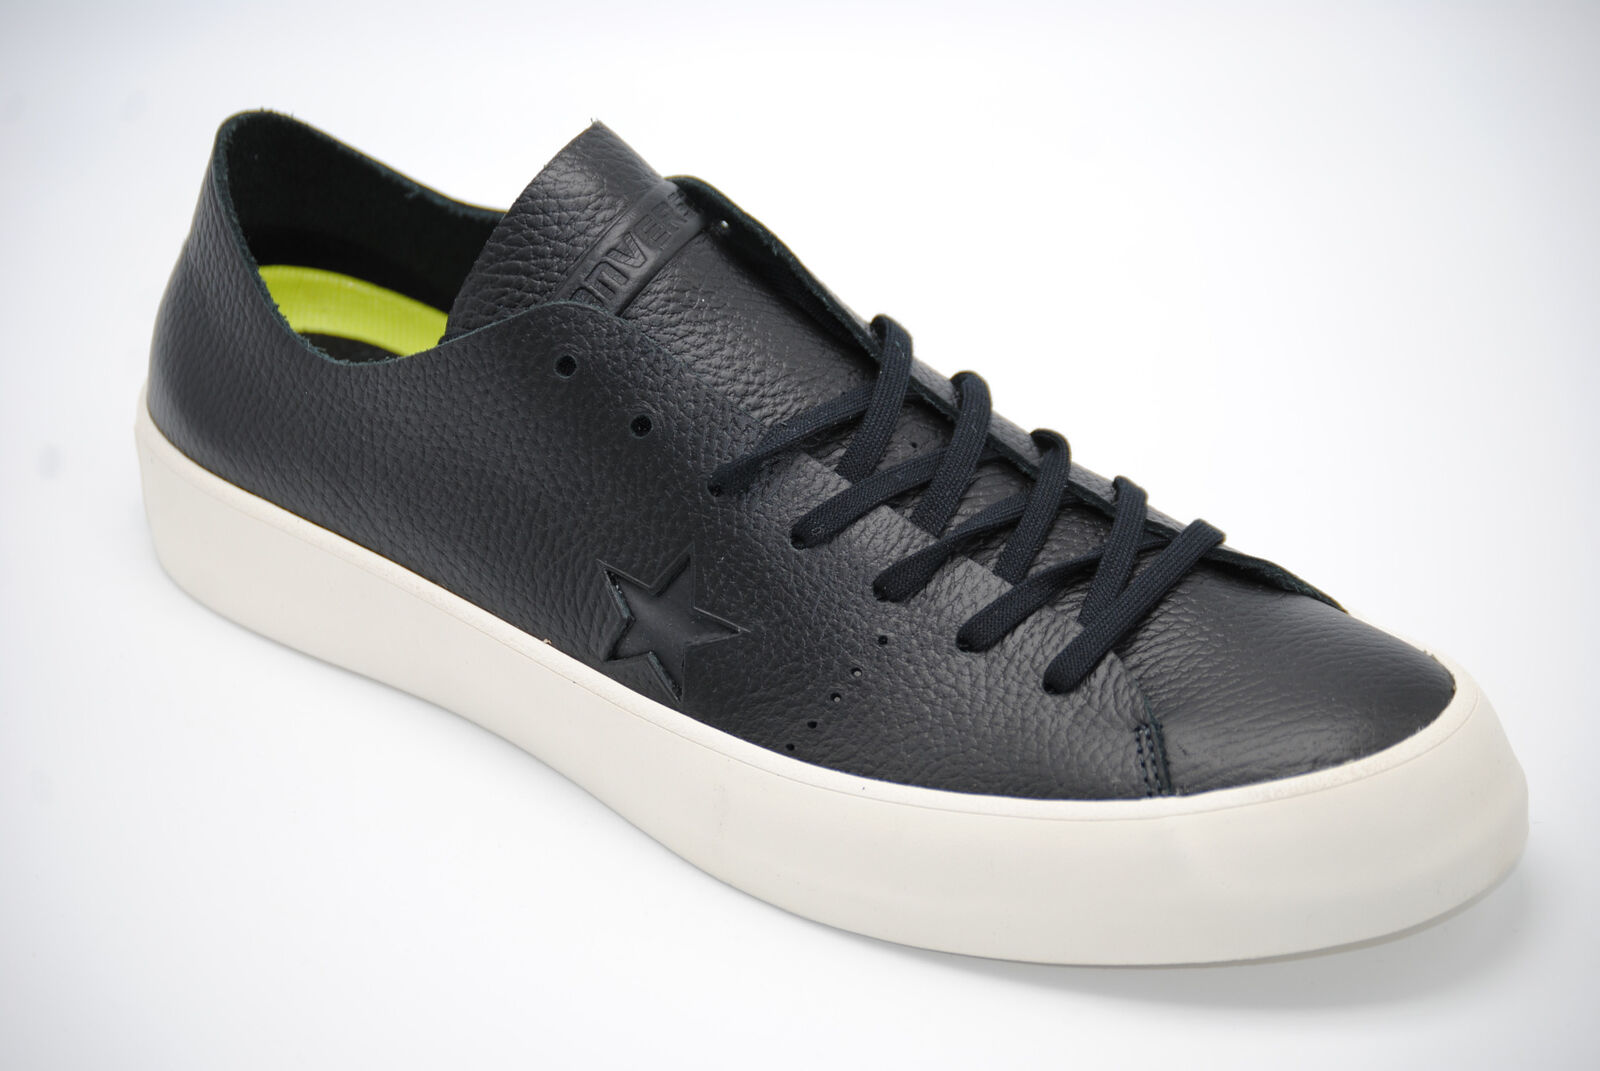 0578c1931ad6 Authentic Converse One Star Prime Low Top US Men s 7 - 13 11 for ...